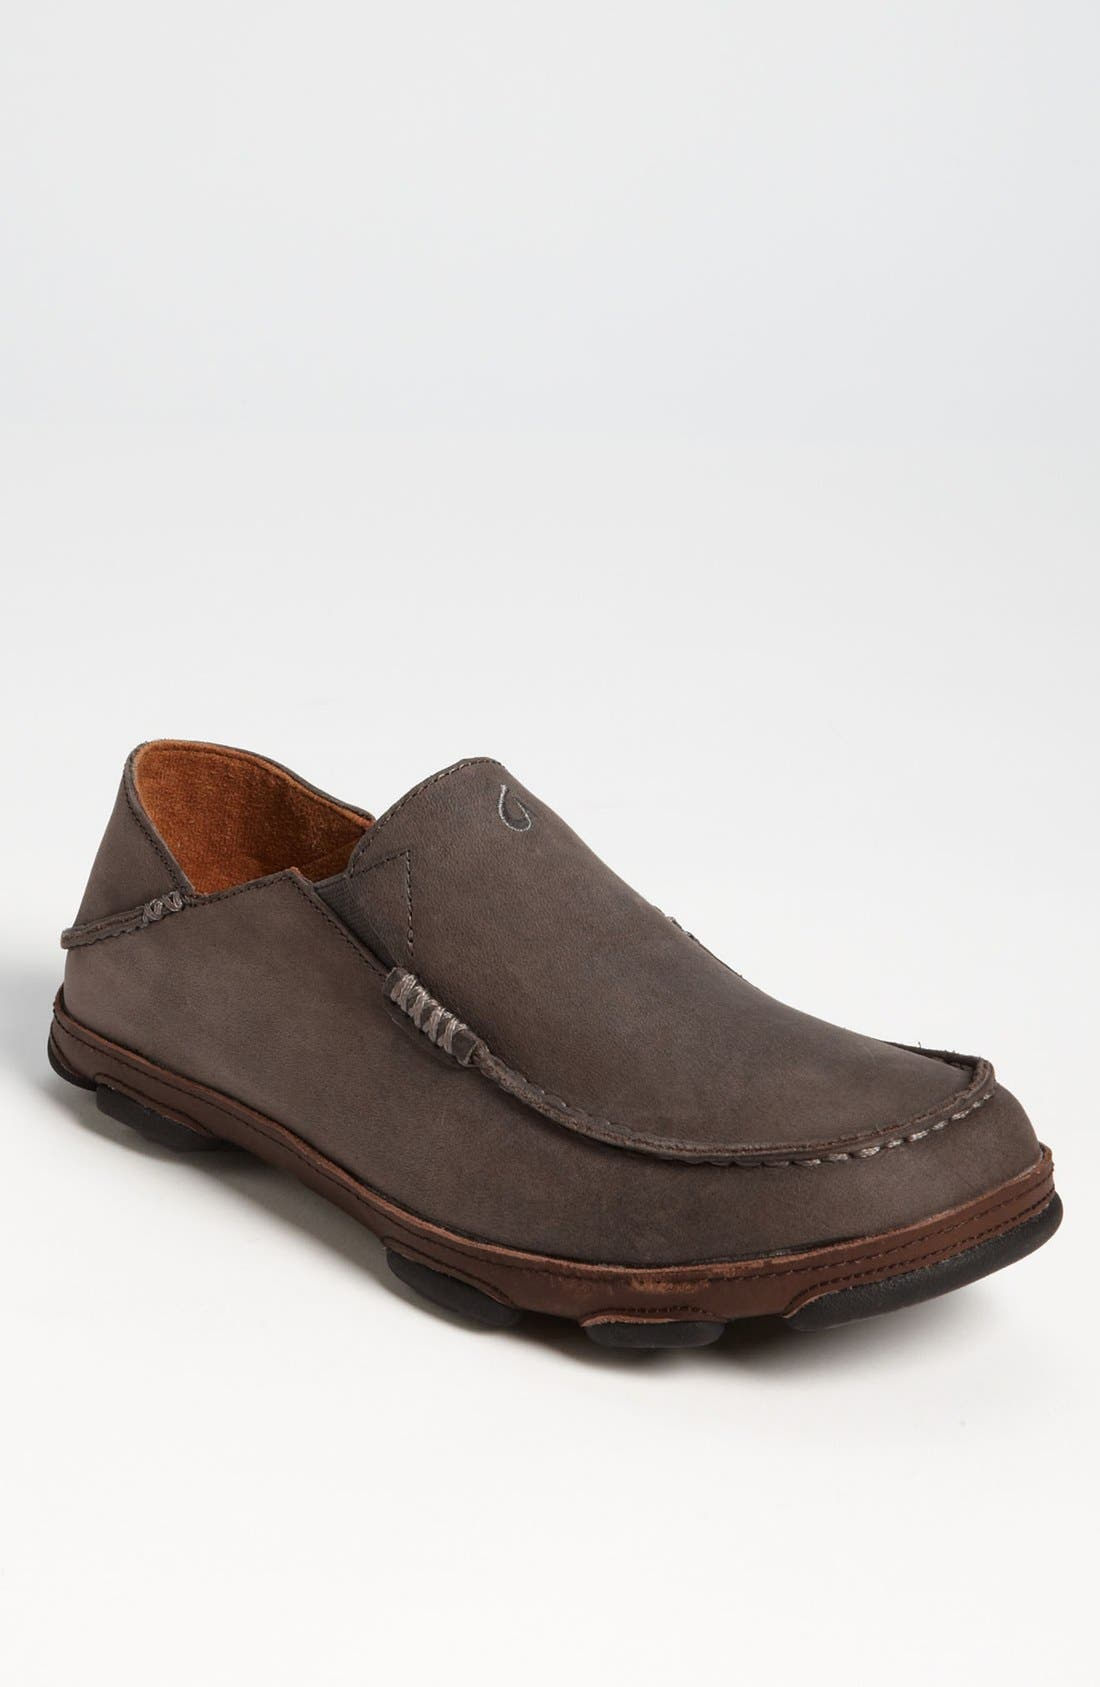 Moloa Slip-On,                         Main,                         color, STORM GREY/ DARK WOOD